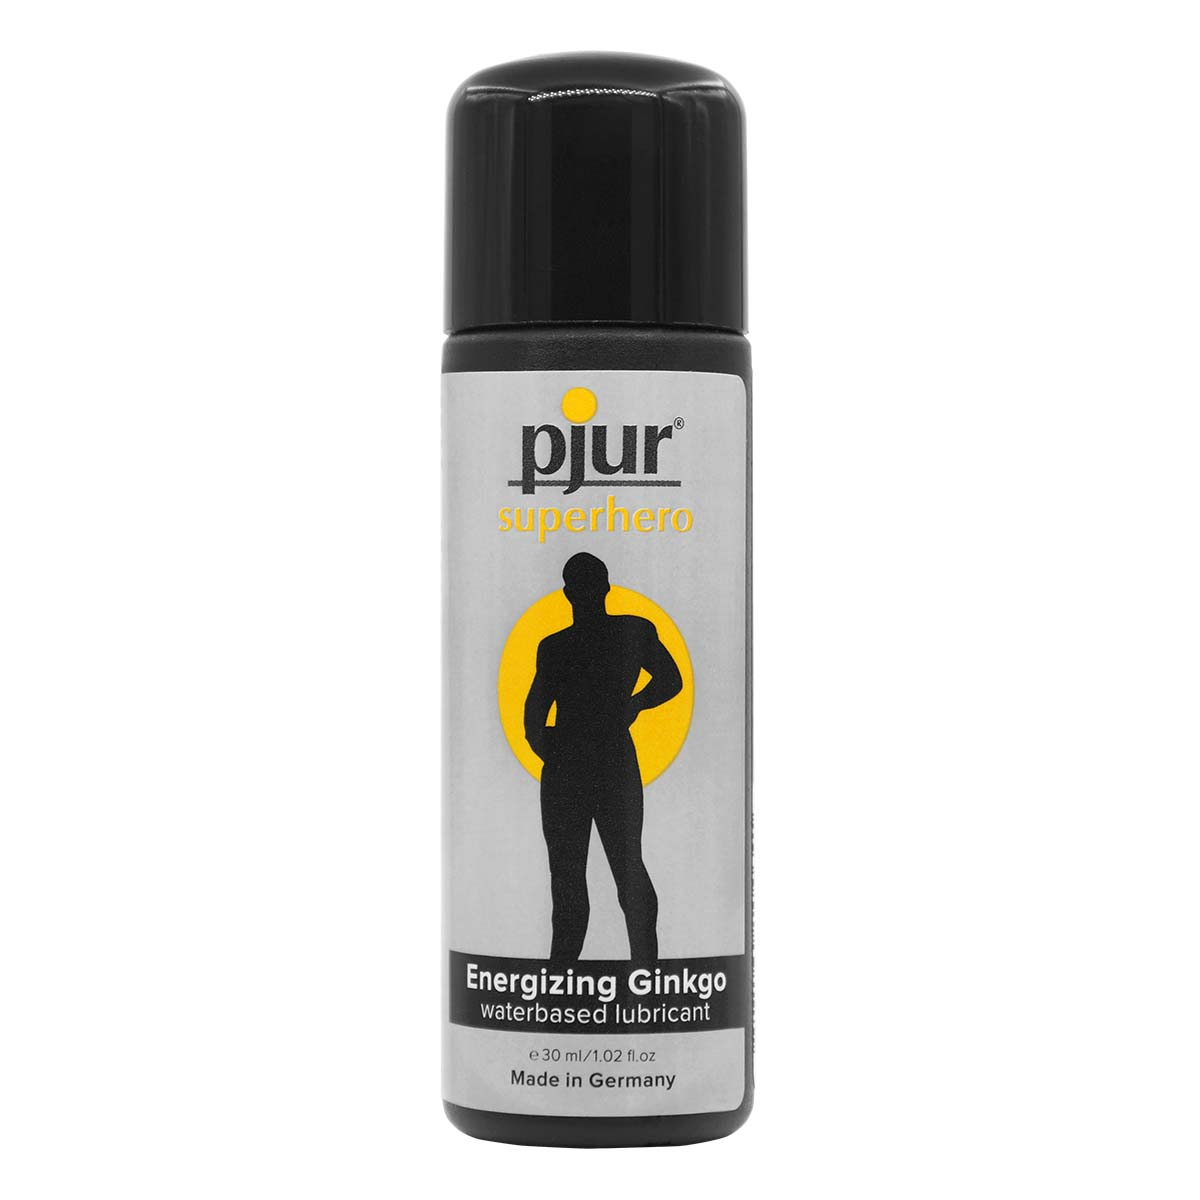 pjur superhero 30ml Water-based Lubricant